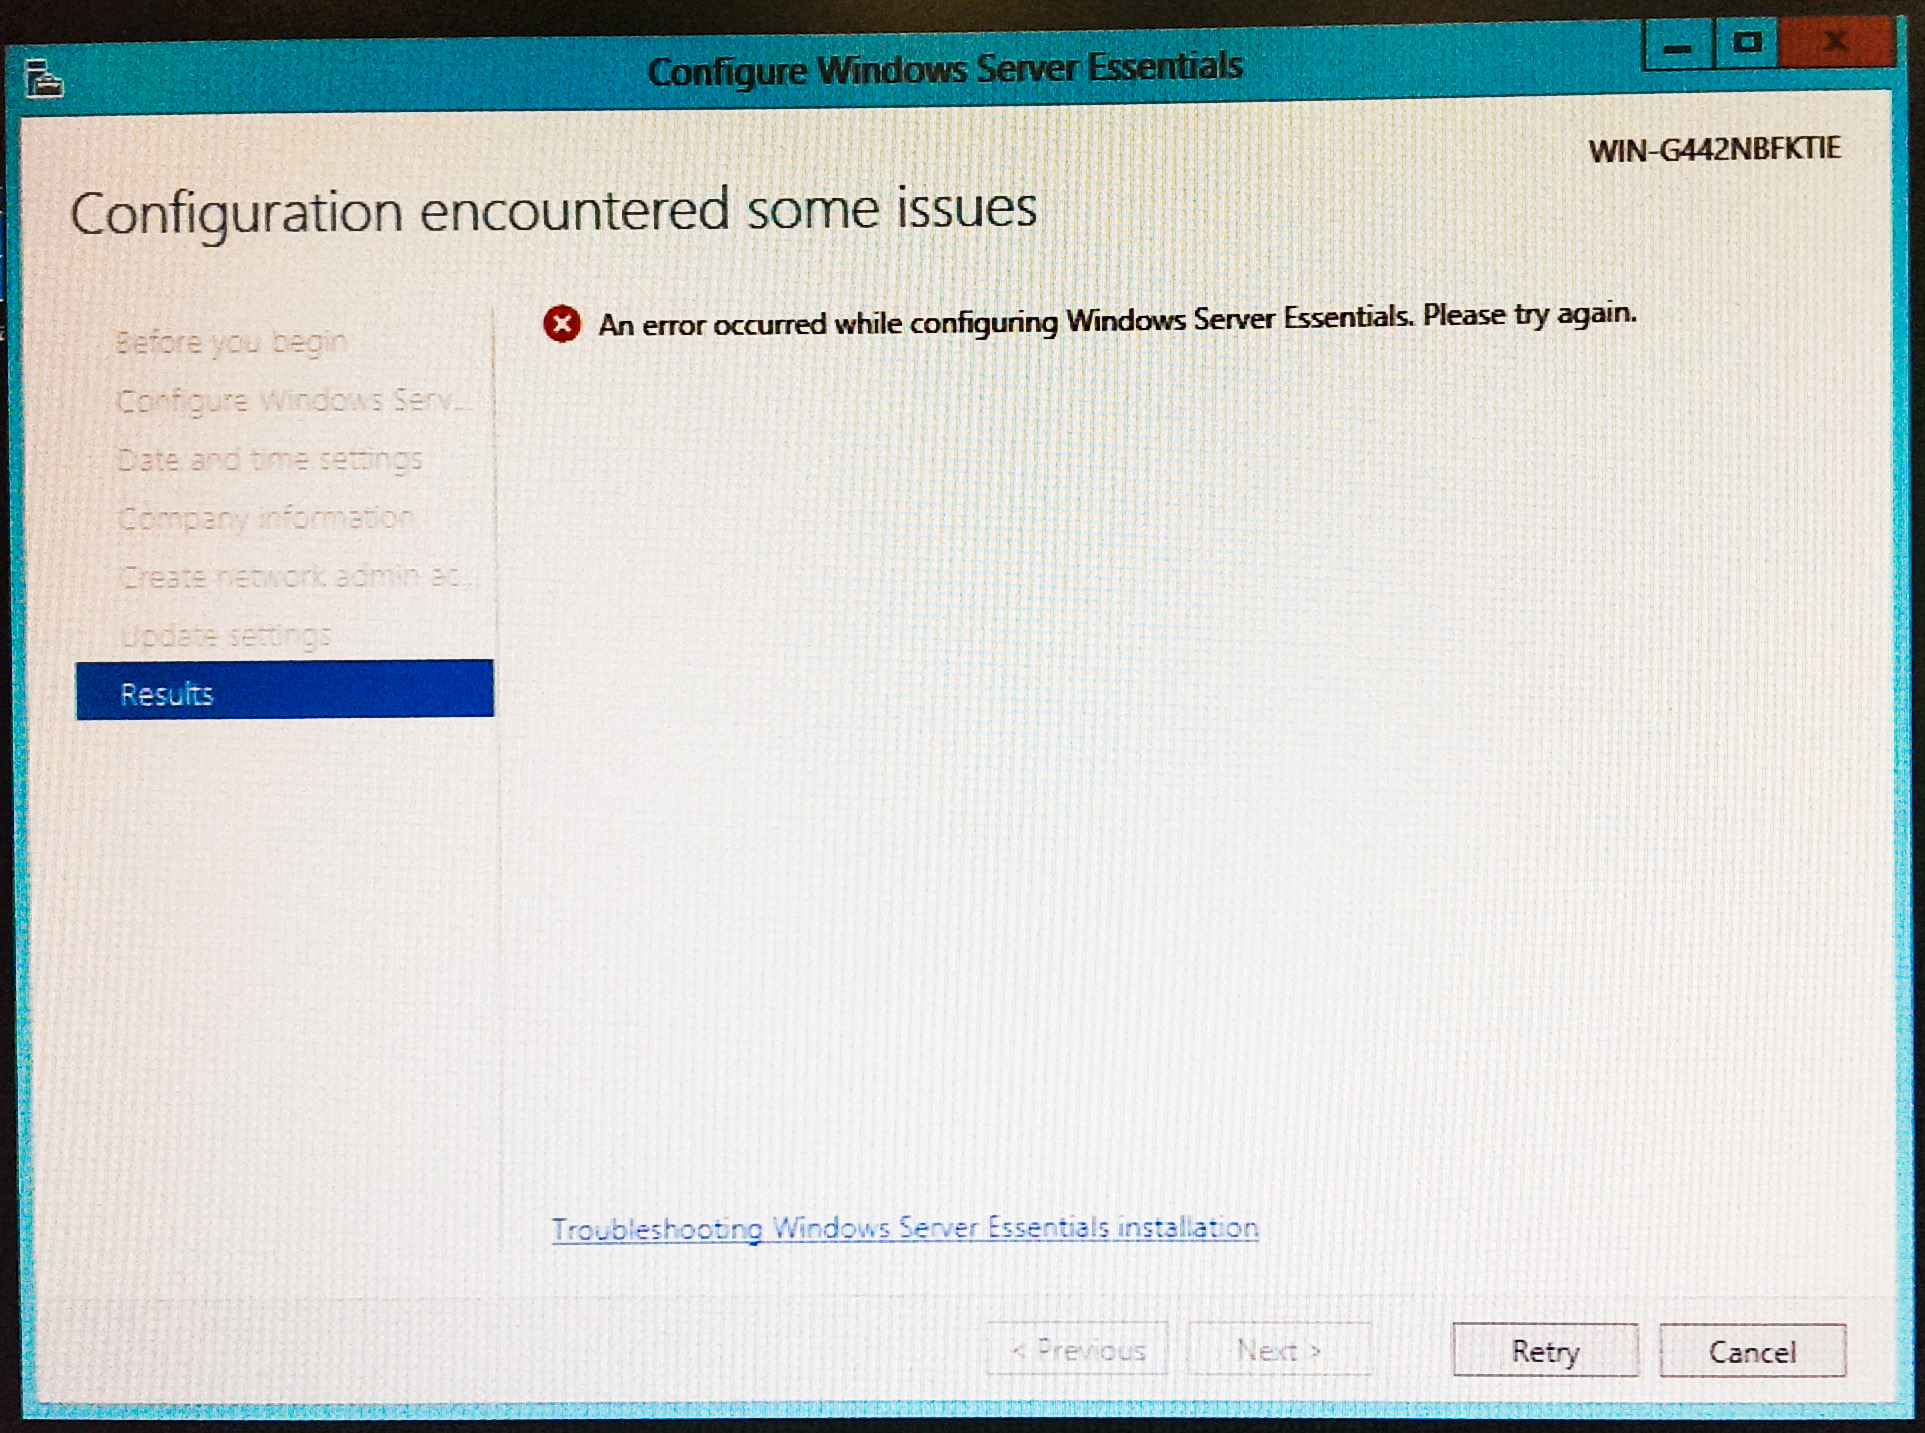 An error occurred while configuring Windows Server